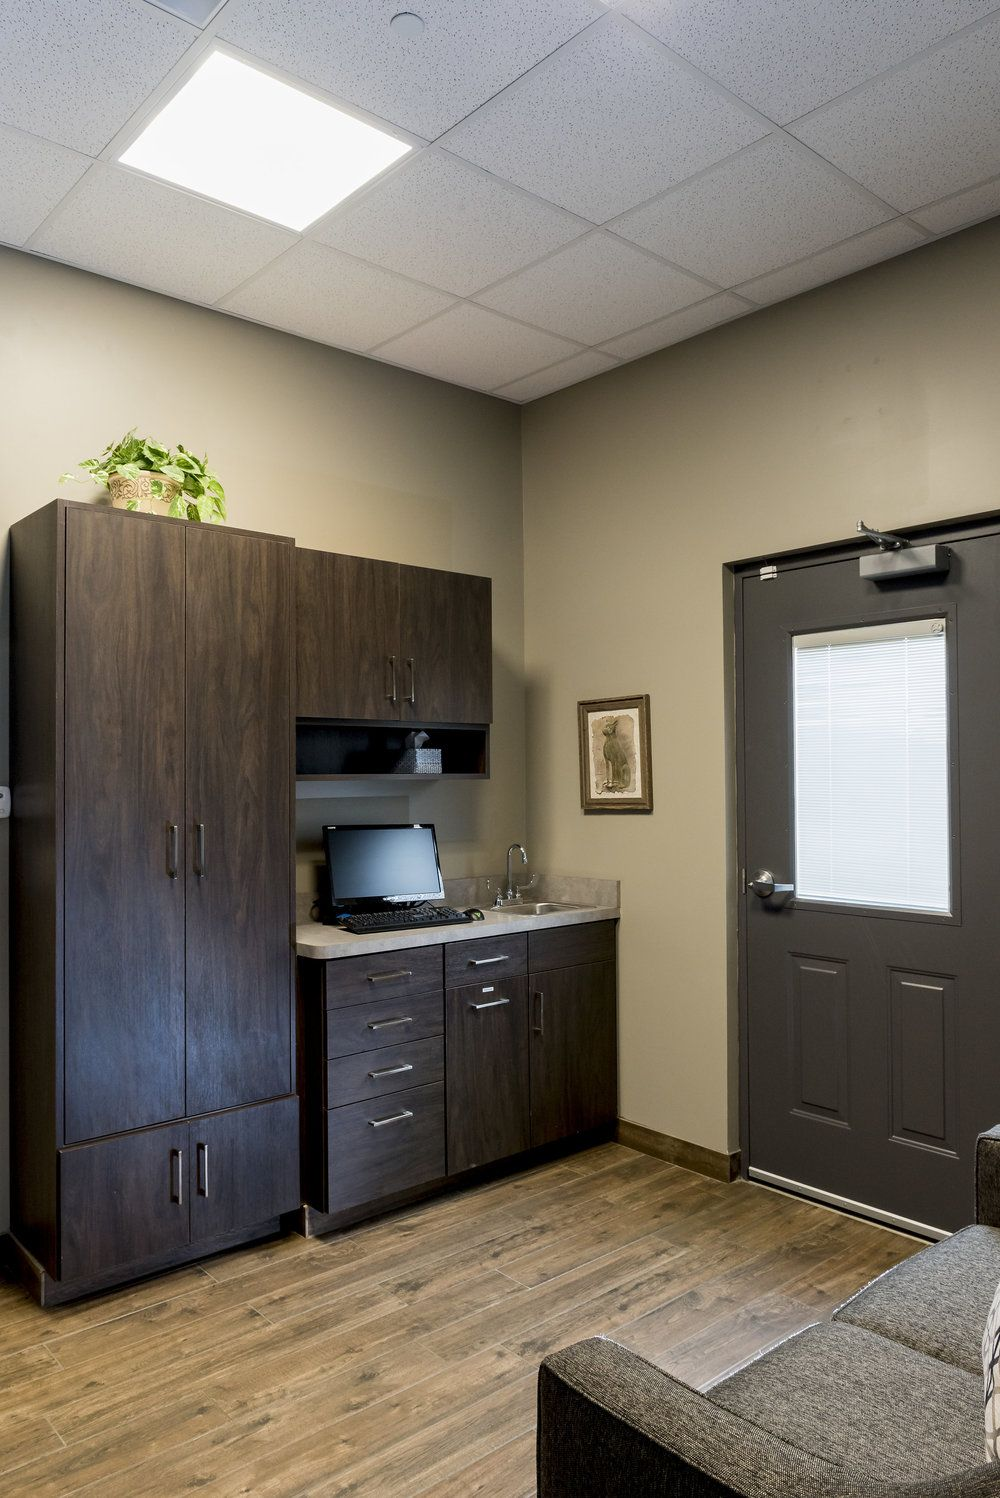 Medical exam room, animal care exam room Clinic design